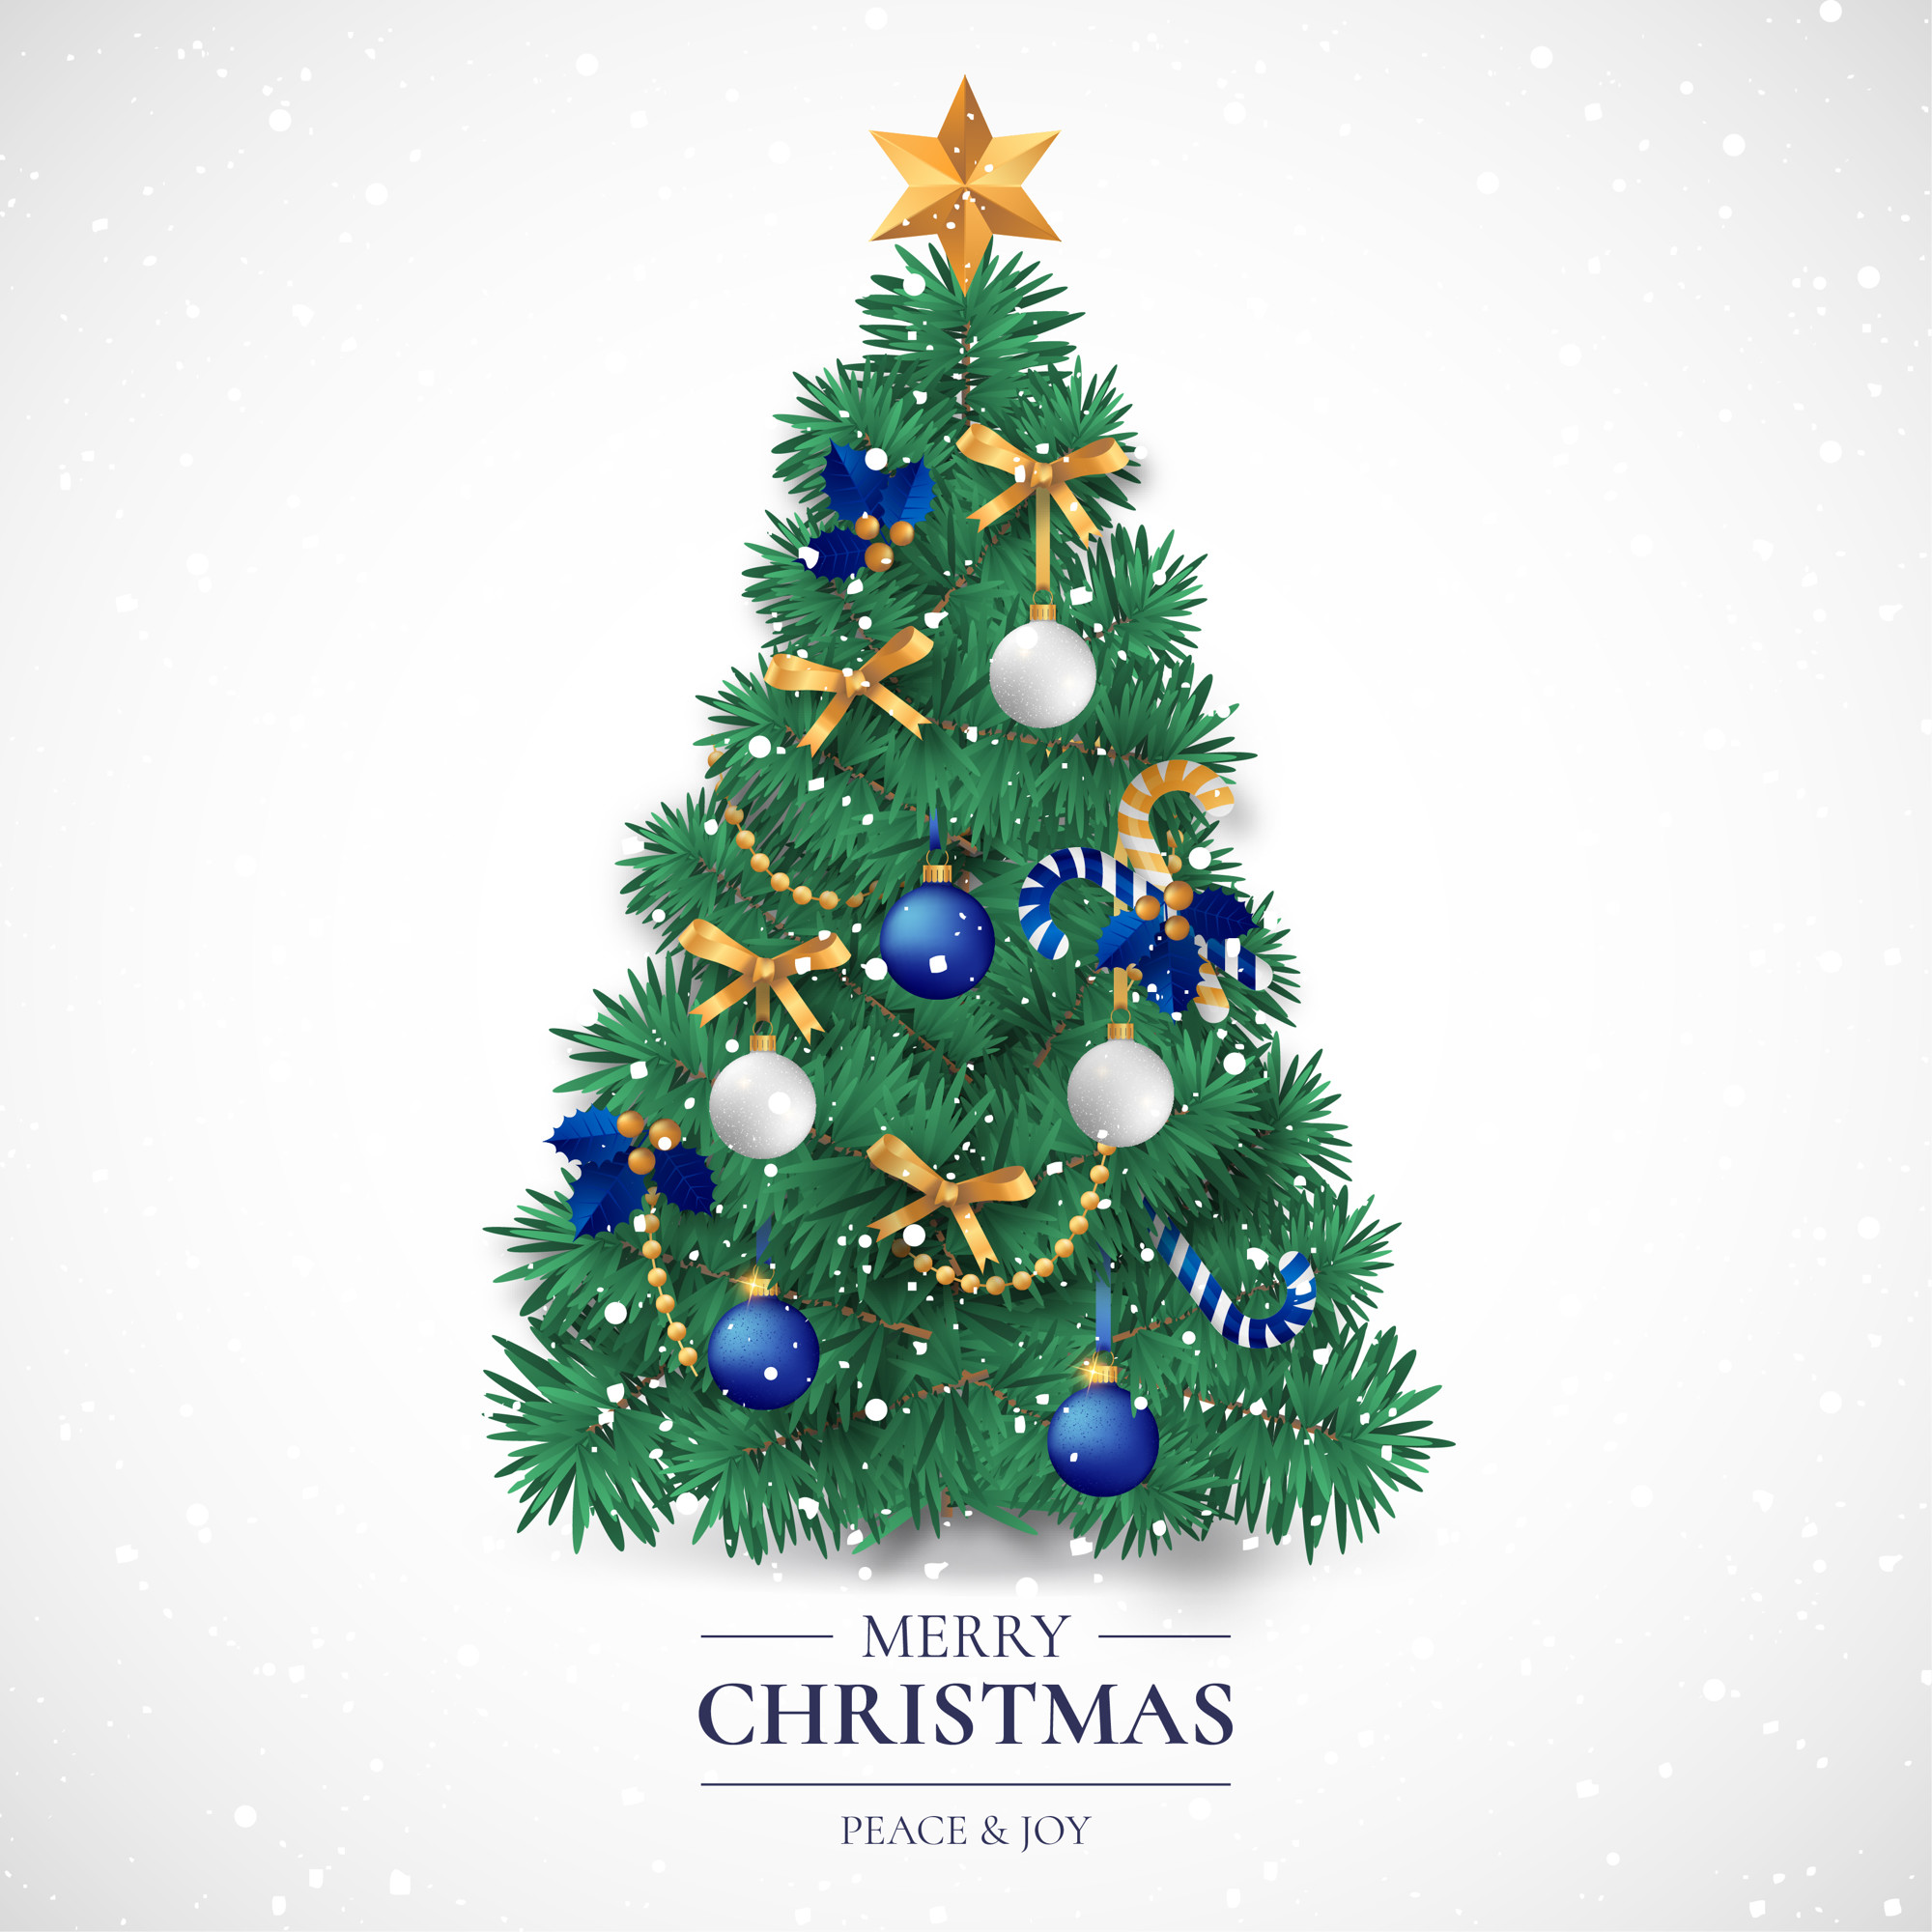 Christmas Card with Realistic Decorative Tree